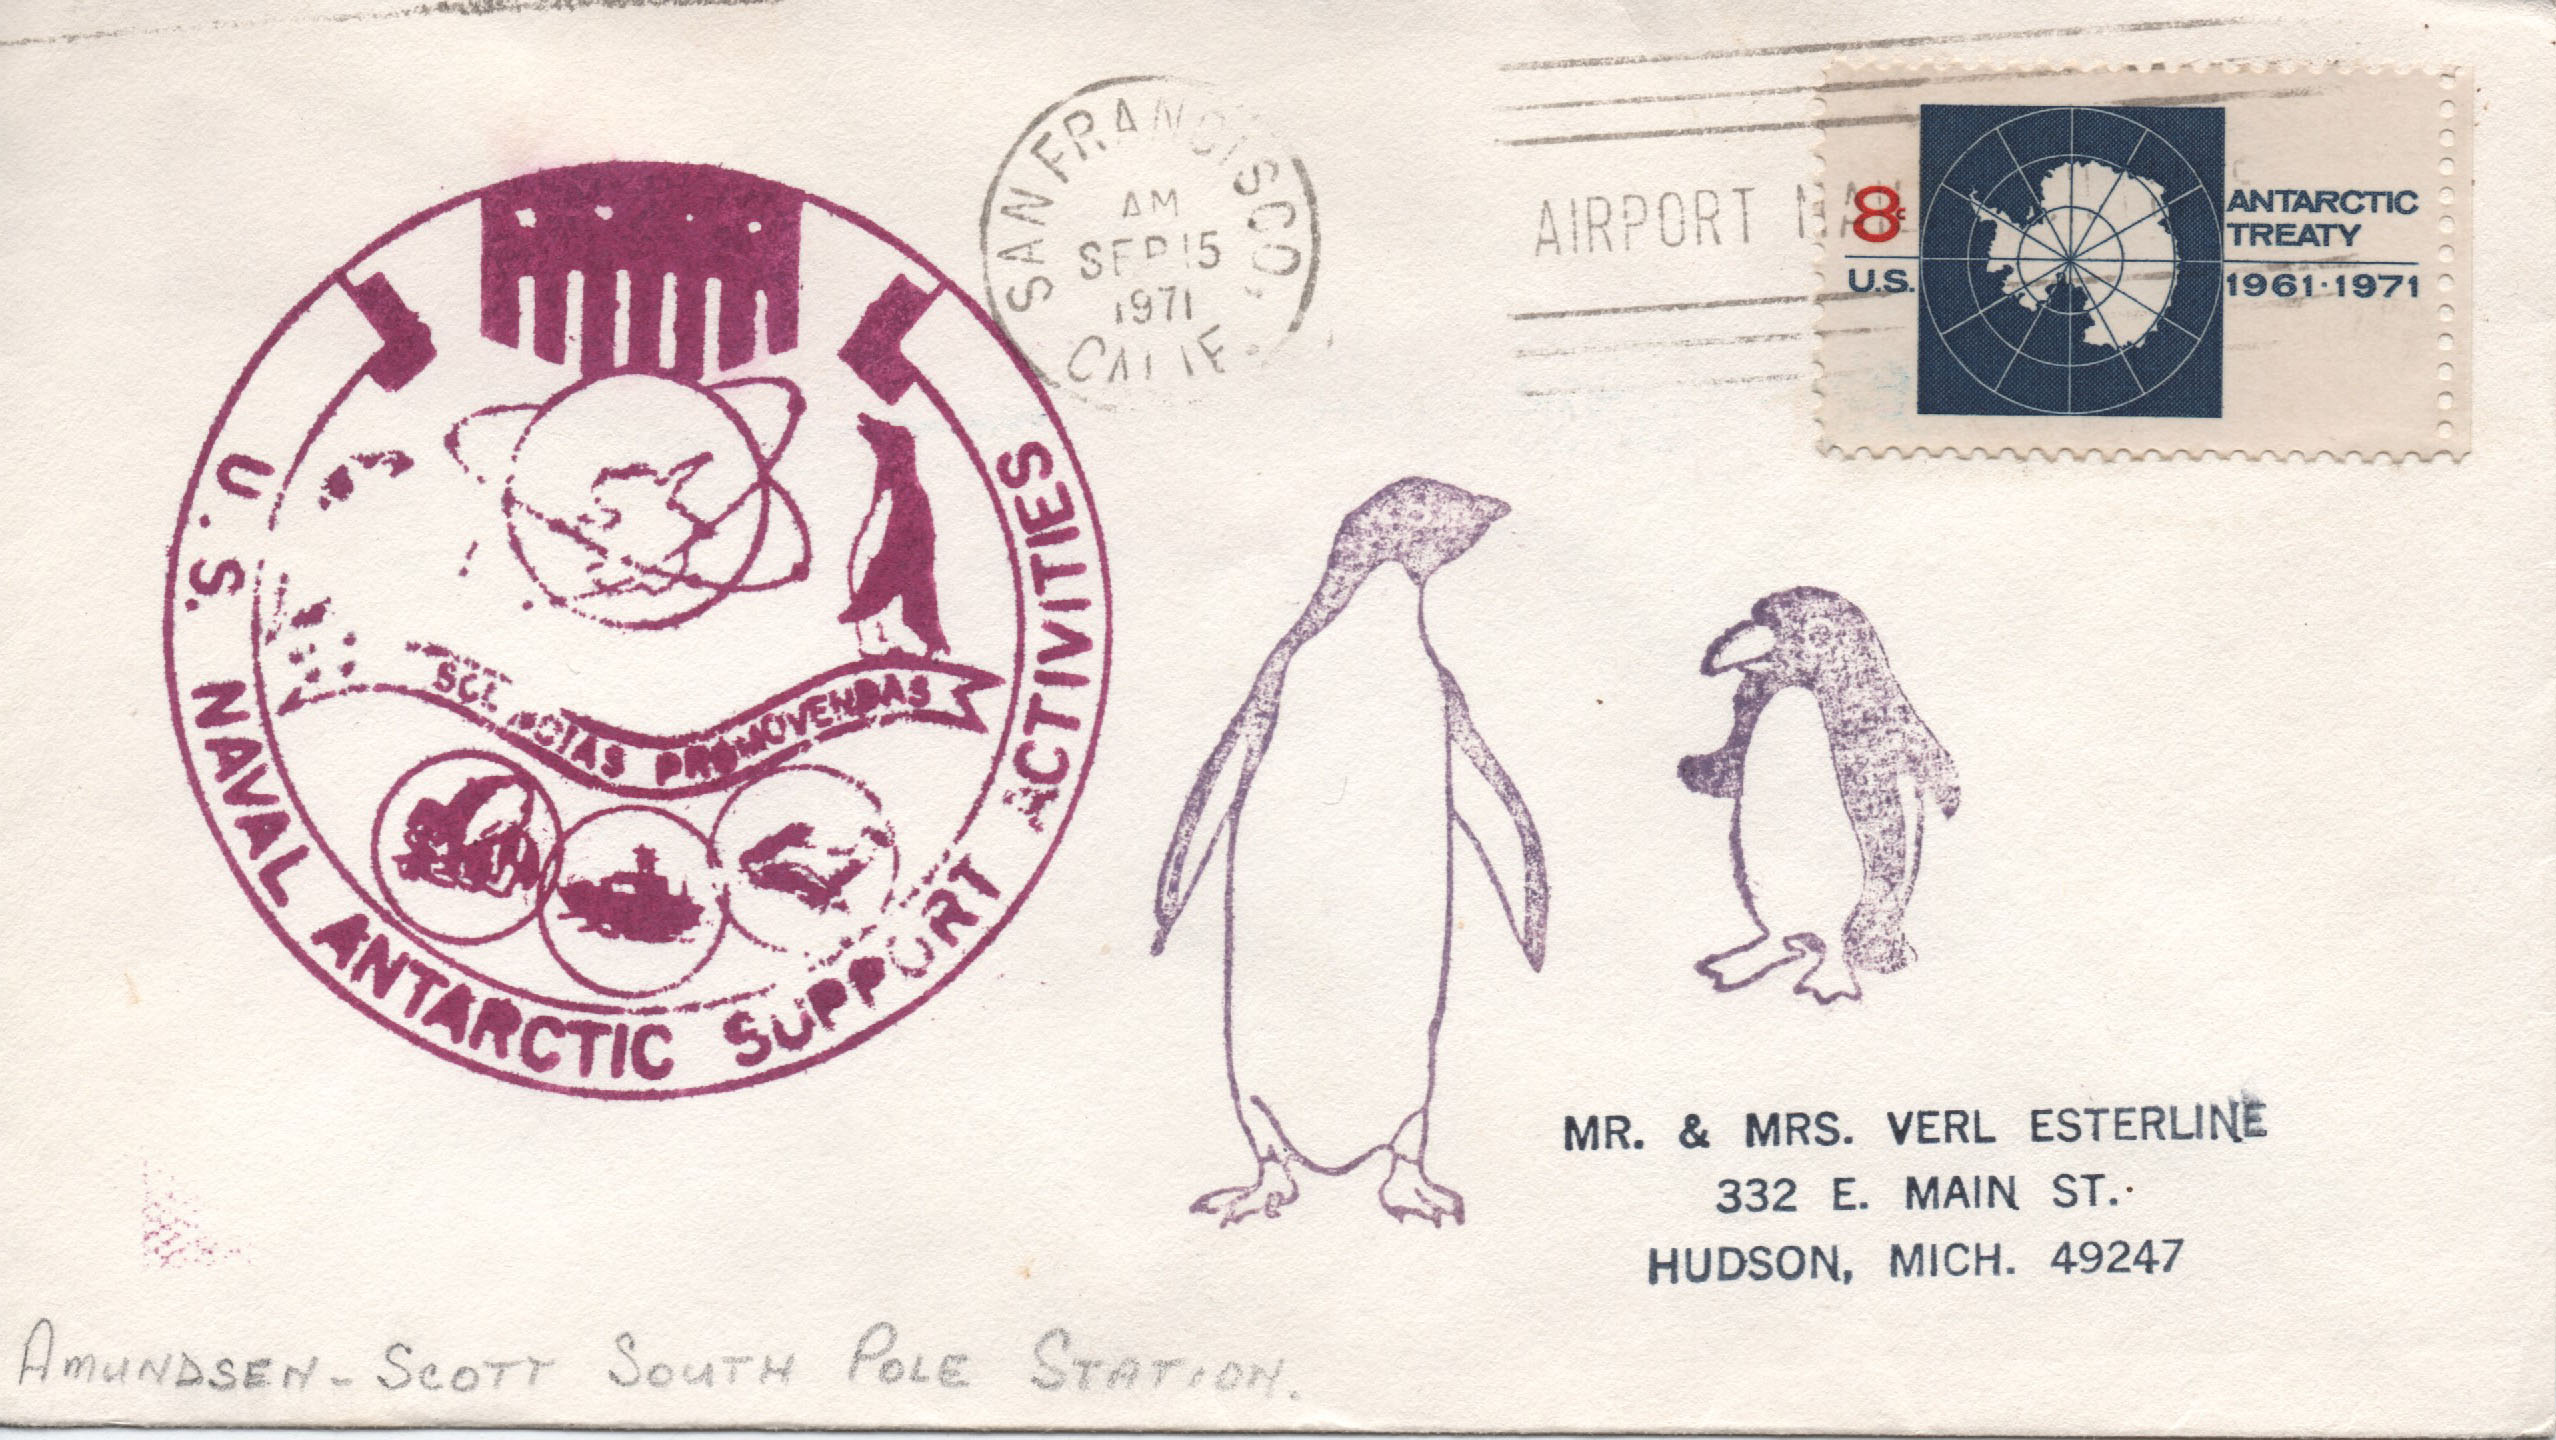 US Naval Antarctic Support Amundsen South Pole